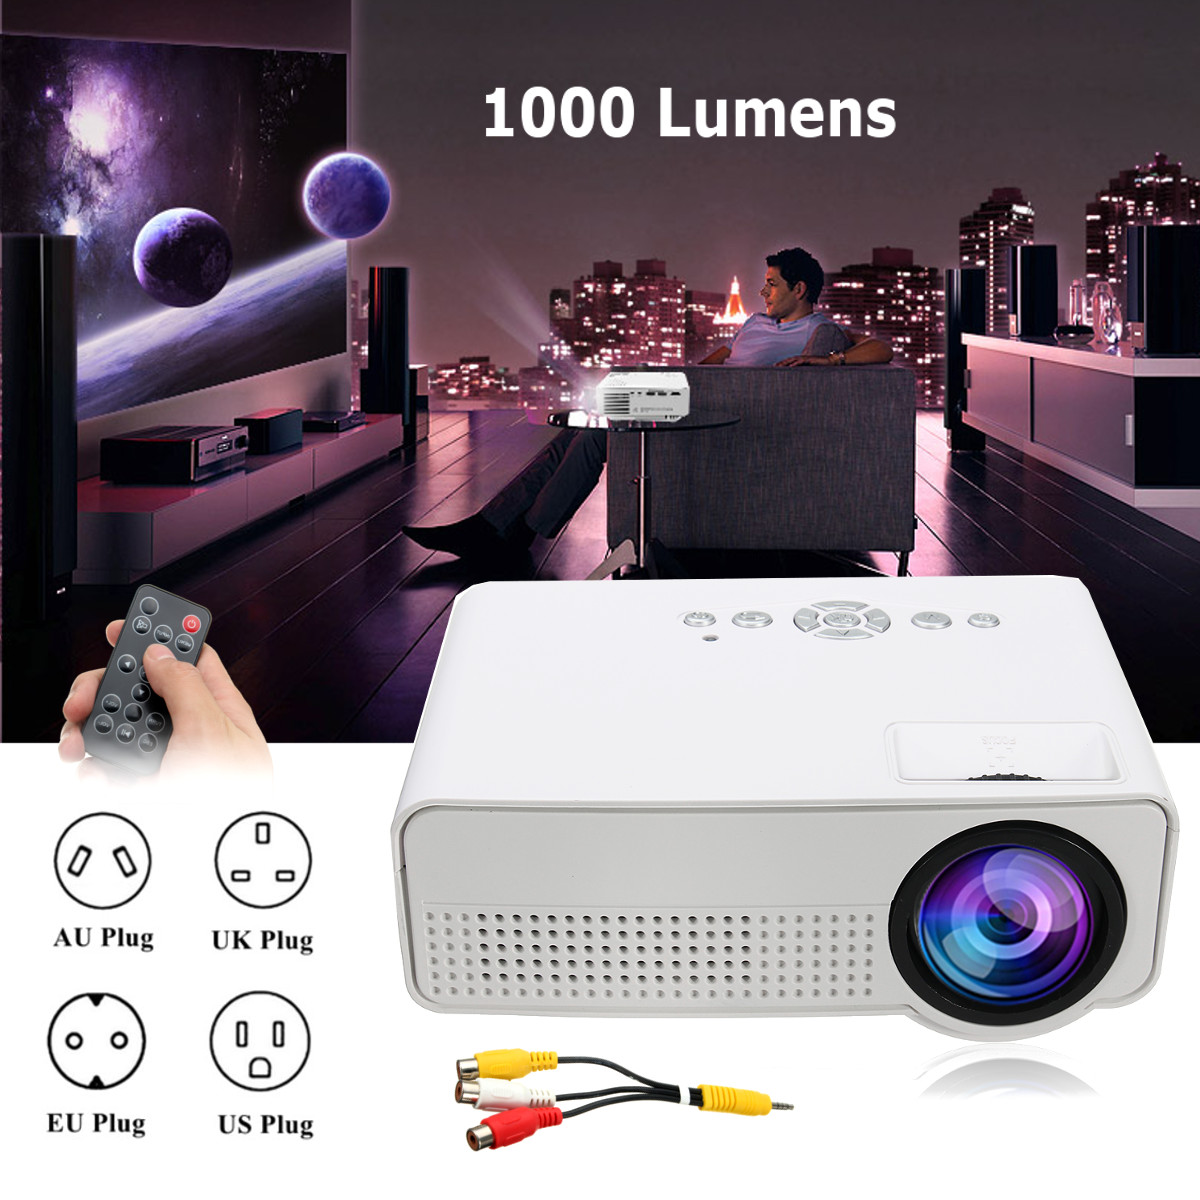 1000 LM 1080P TFT LCD Multimedia LED Lamp HDMI Portable Projector Home Cinema Theater1000 LM 1080P TFT LCD Multimedia LED Lamp HDMI Portable Projector Home Cinema Theater